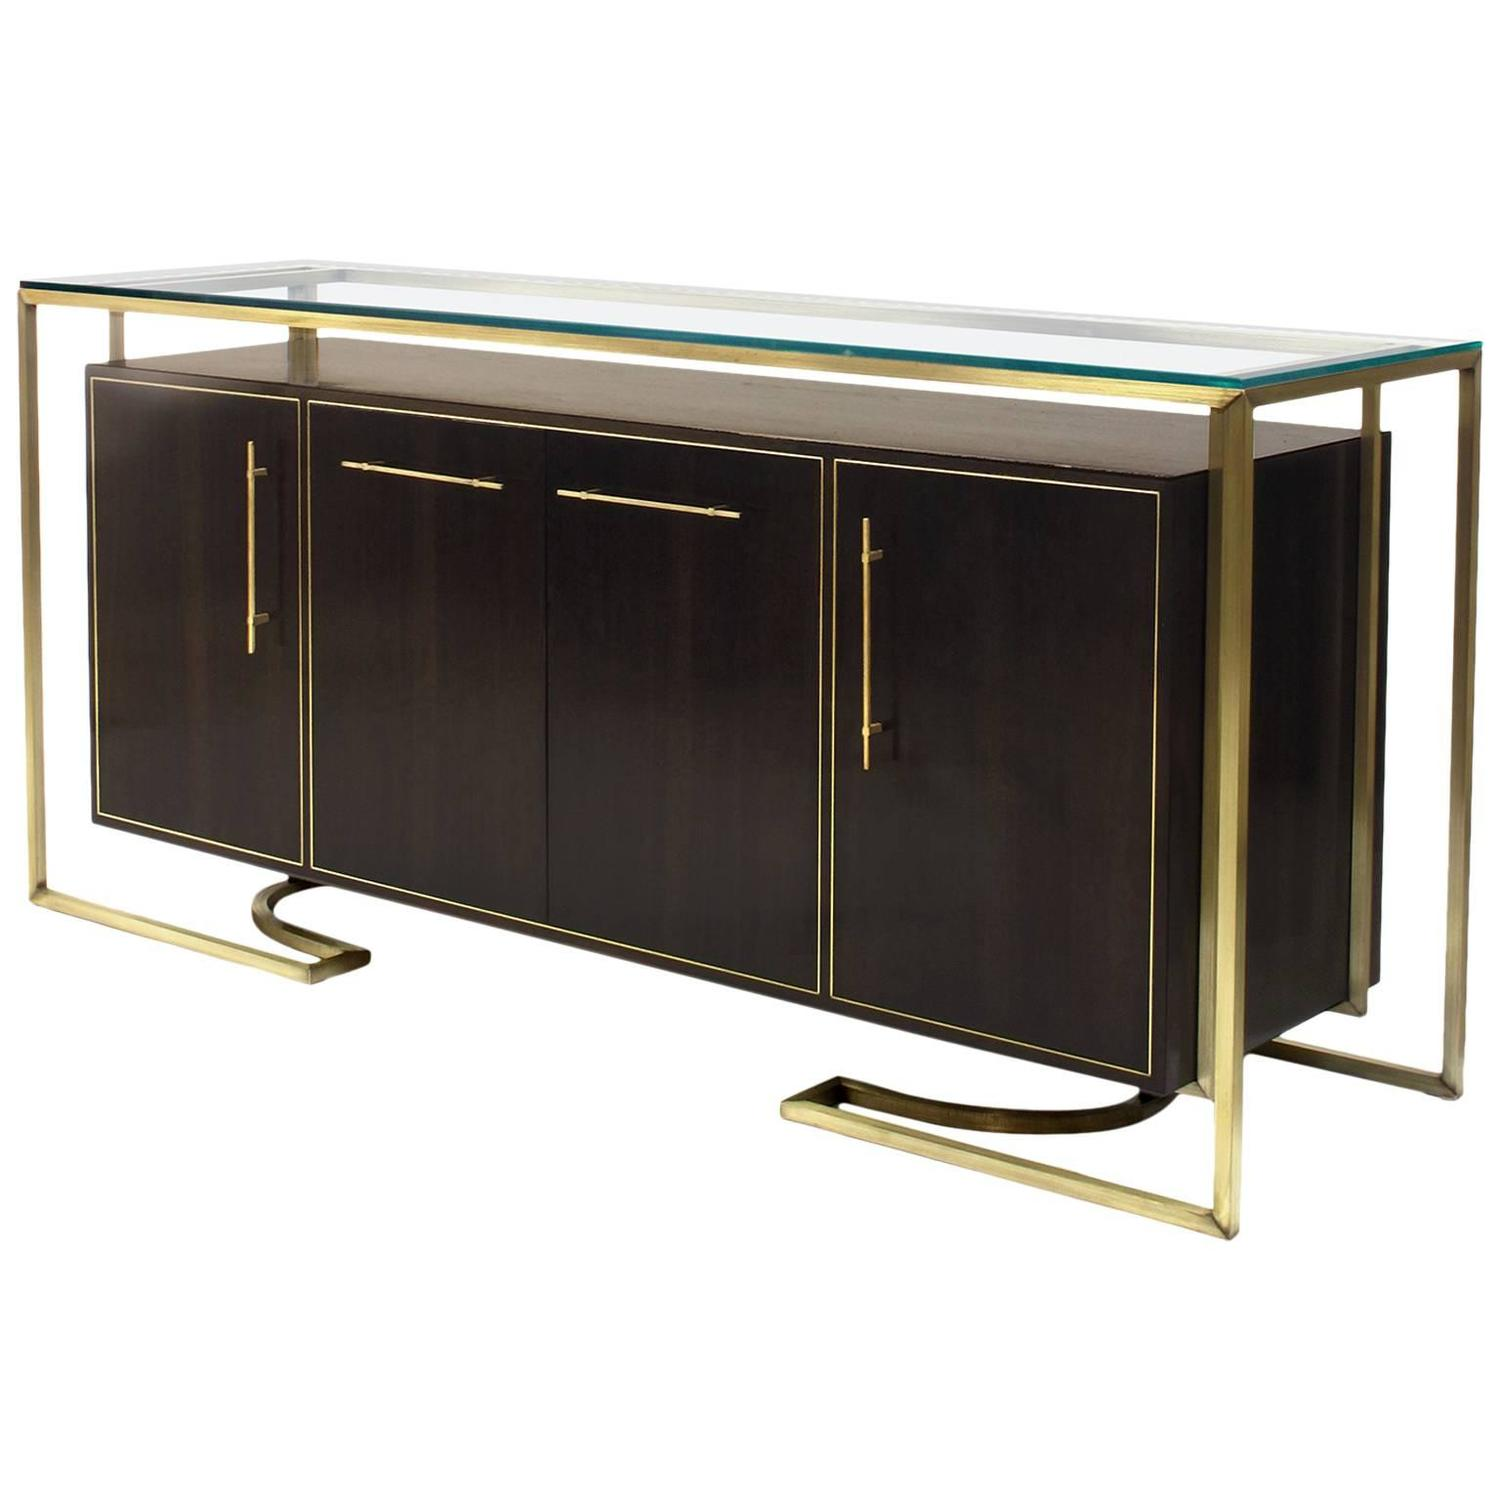 Hanging Credenza For Sale At 1stdibs